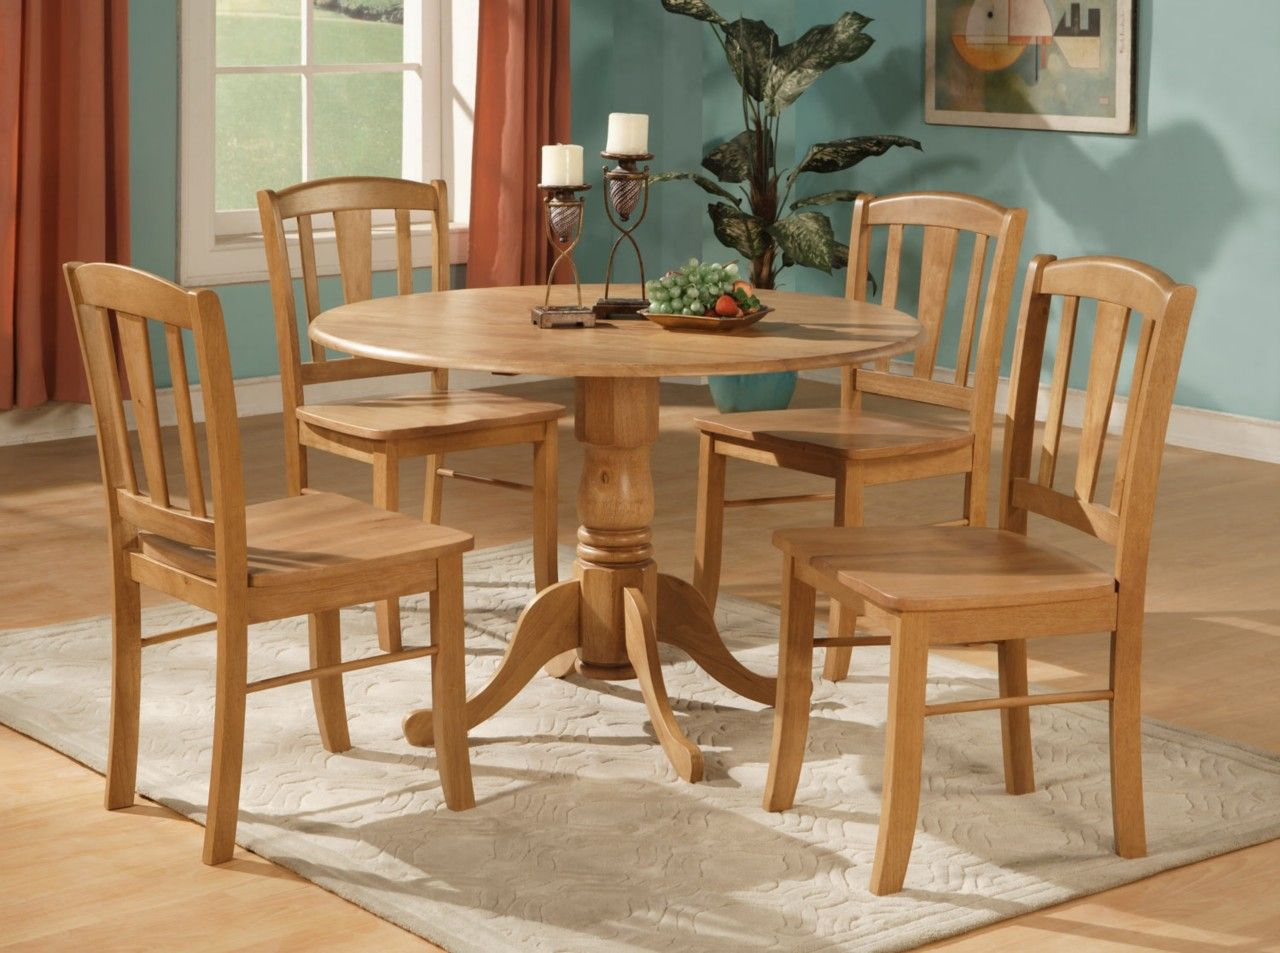 KitchenWood Kitchen Table And Chairs Sets Wood Dining Table And ...